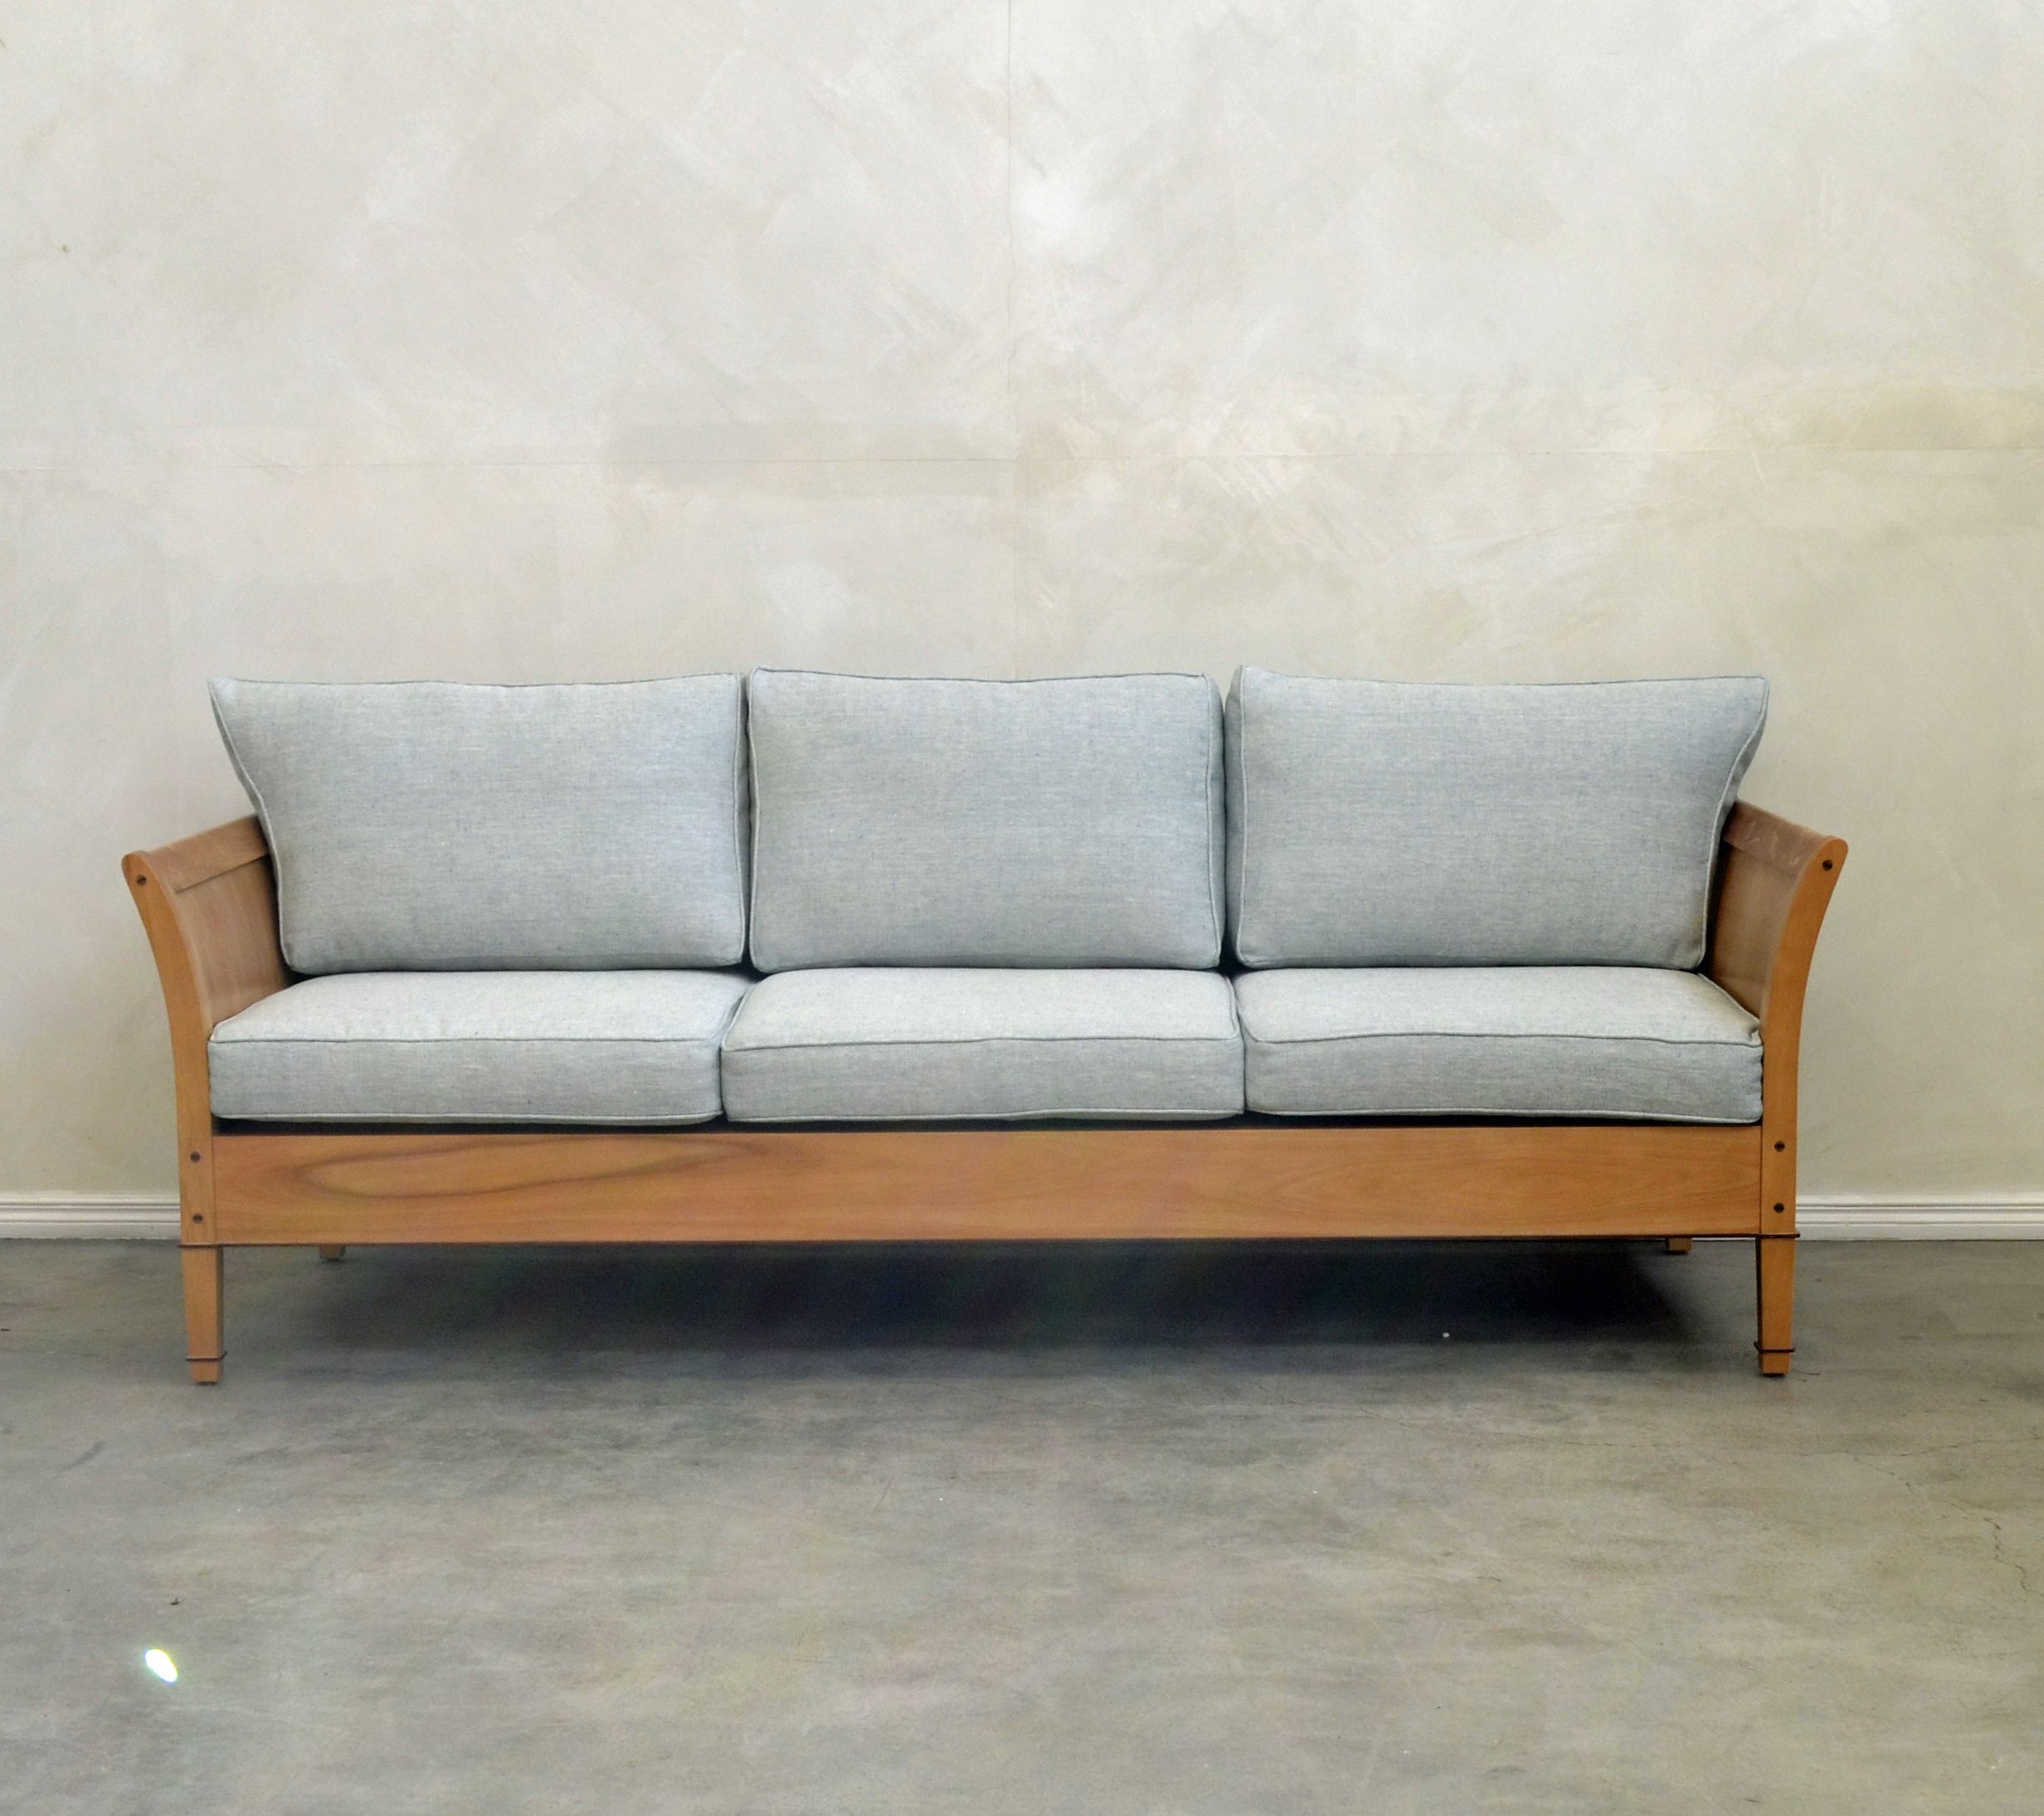 Timberside Sofa In Natural Linen By Rose And Heather Nz Sofa Outdoor Sofa Seating